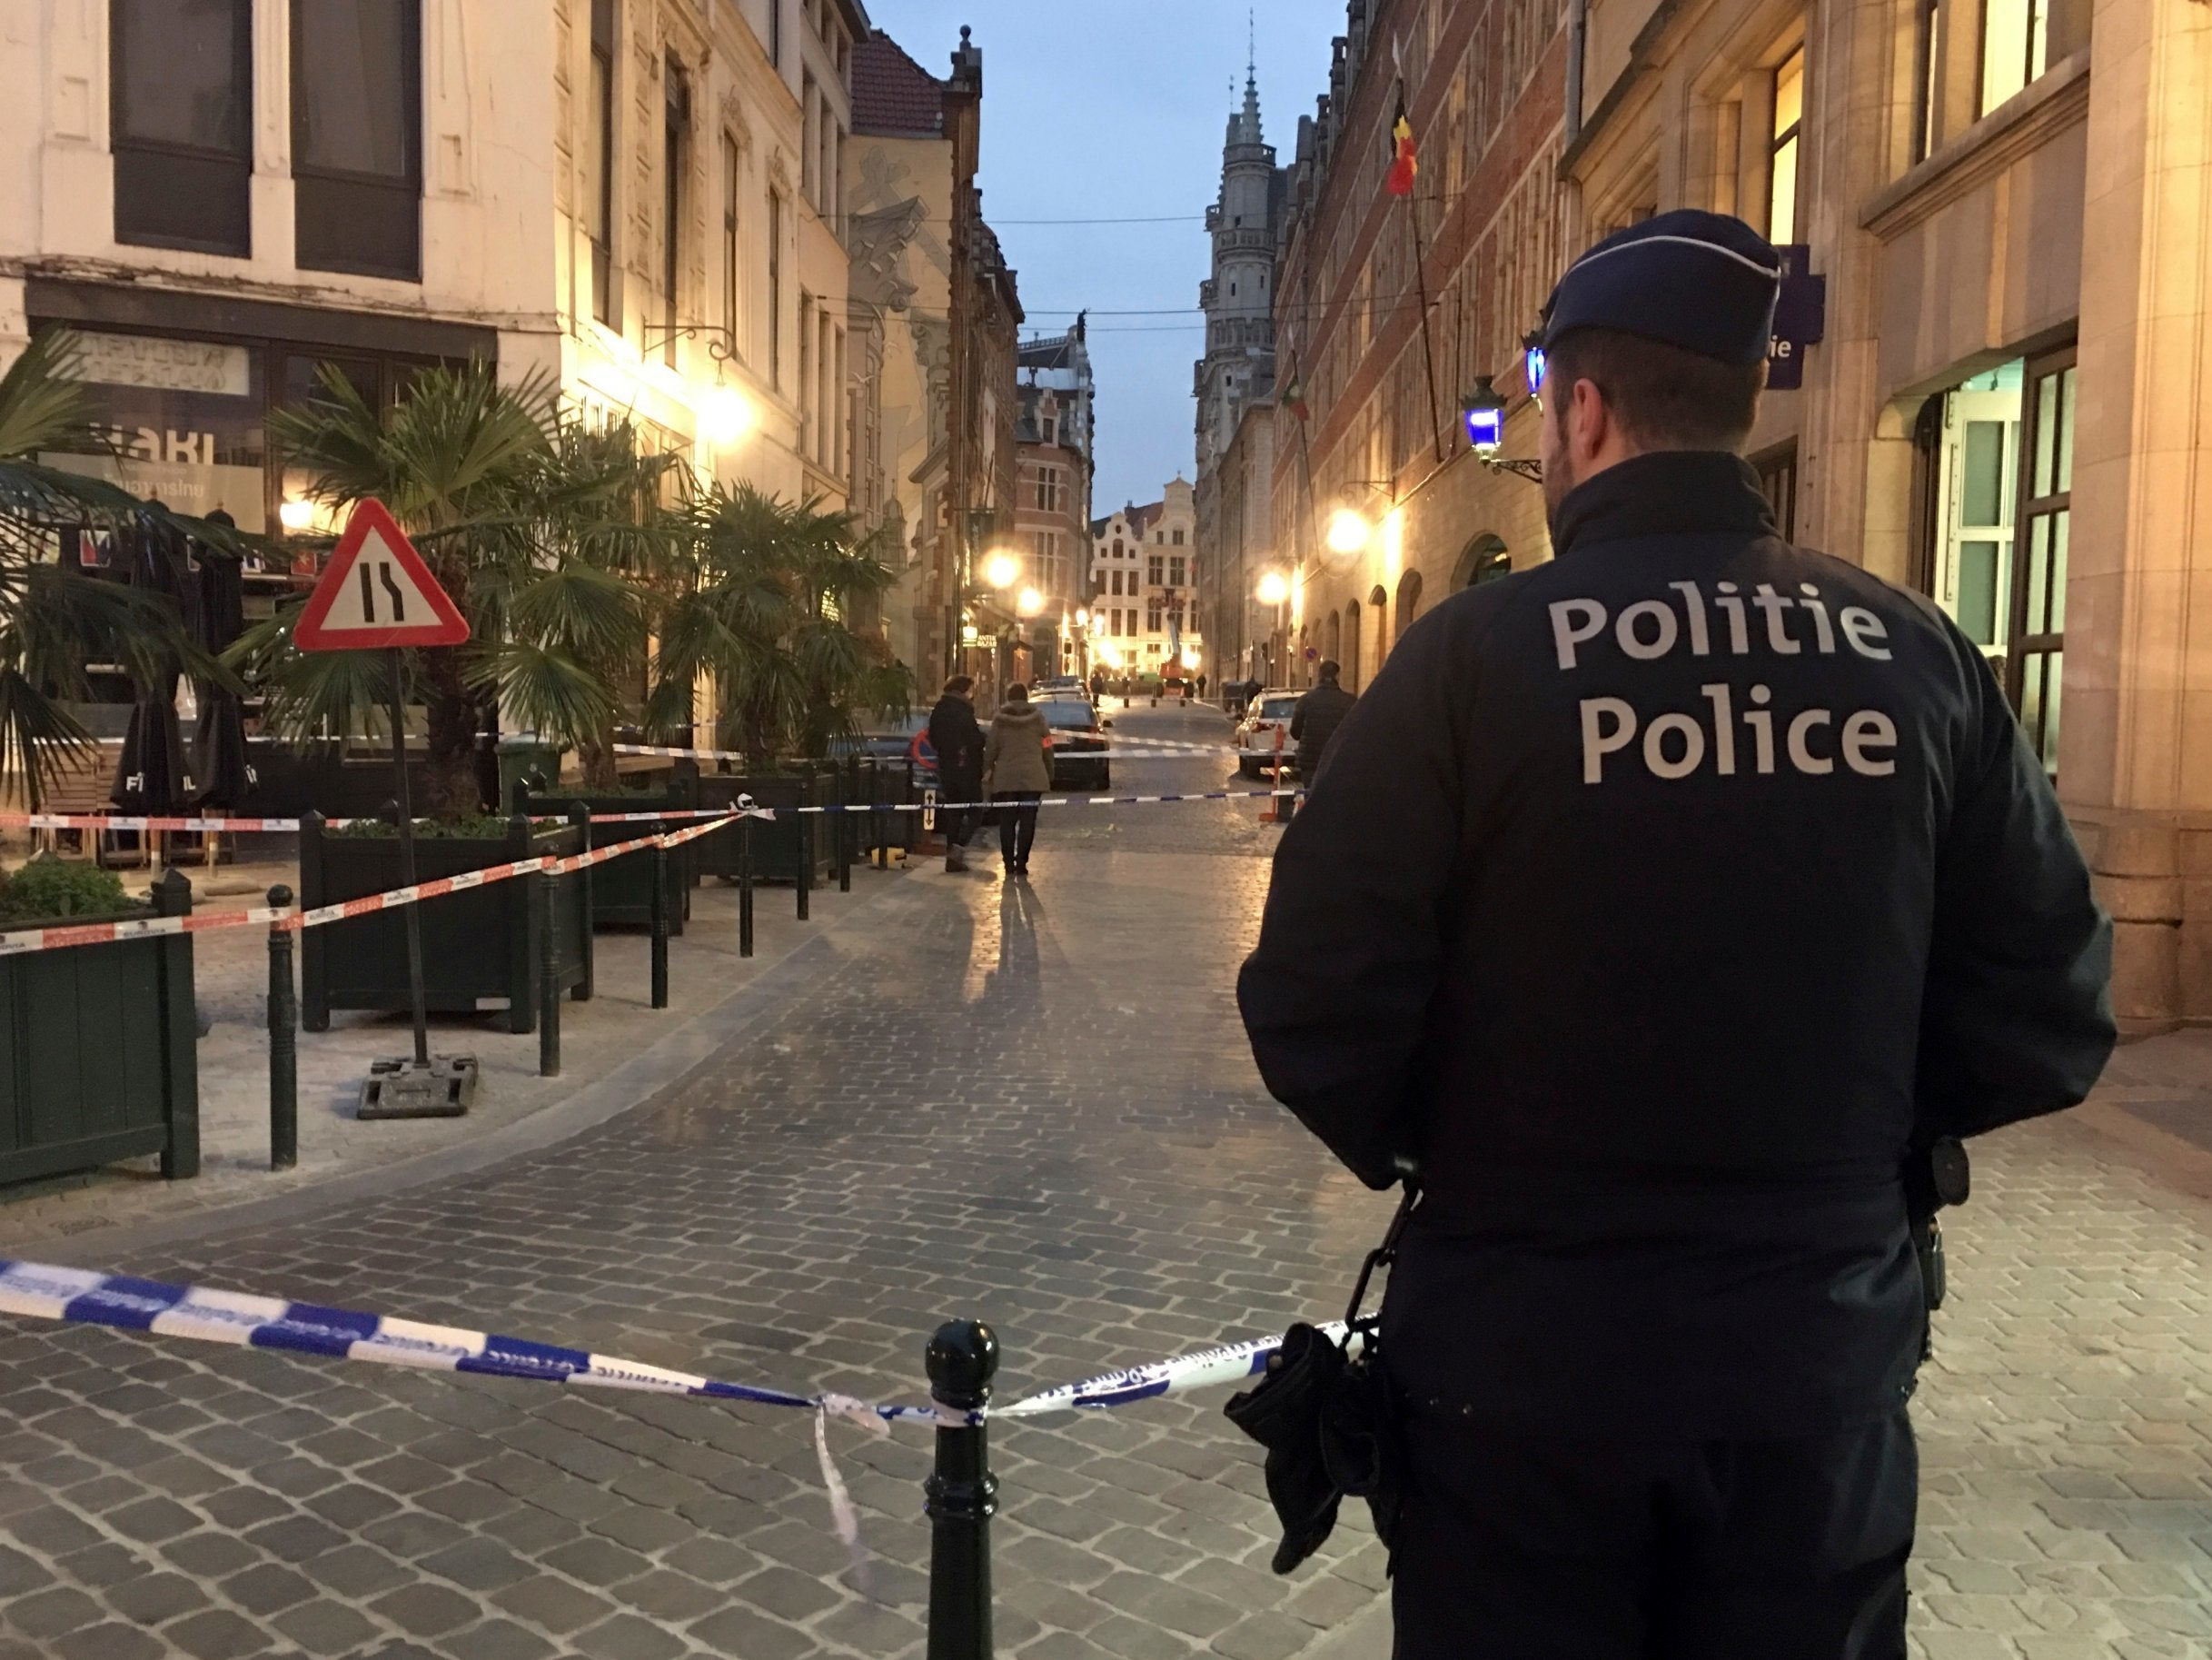 Brussels attack: Police officer stabbed in Belgium's capital before attacker shot